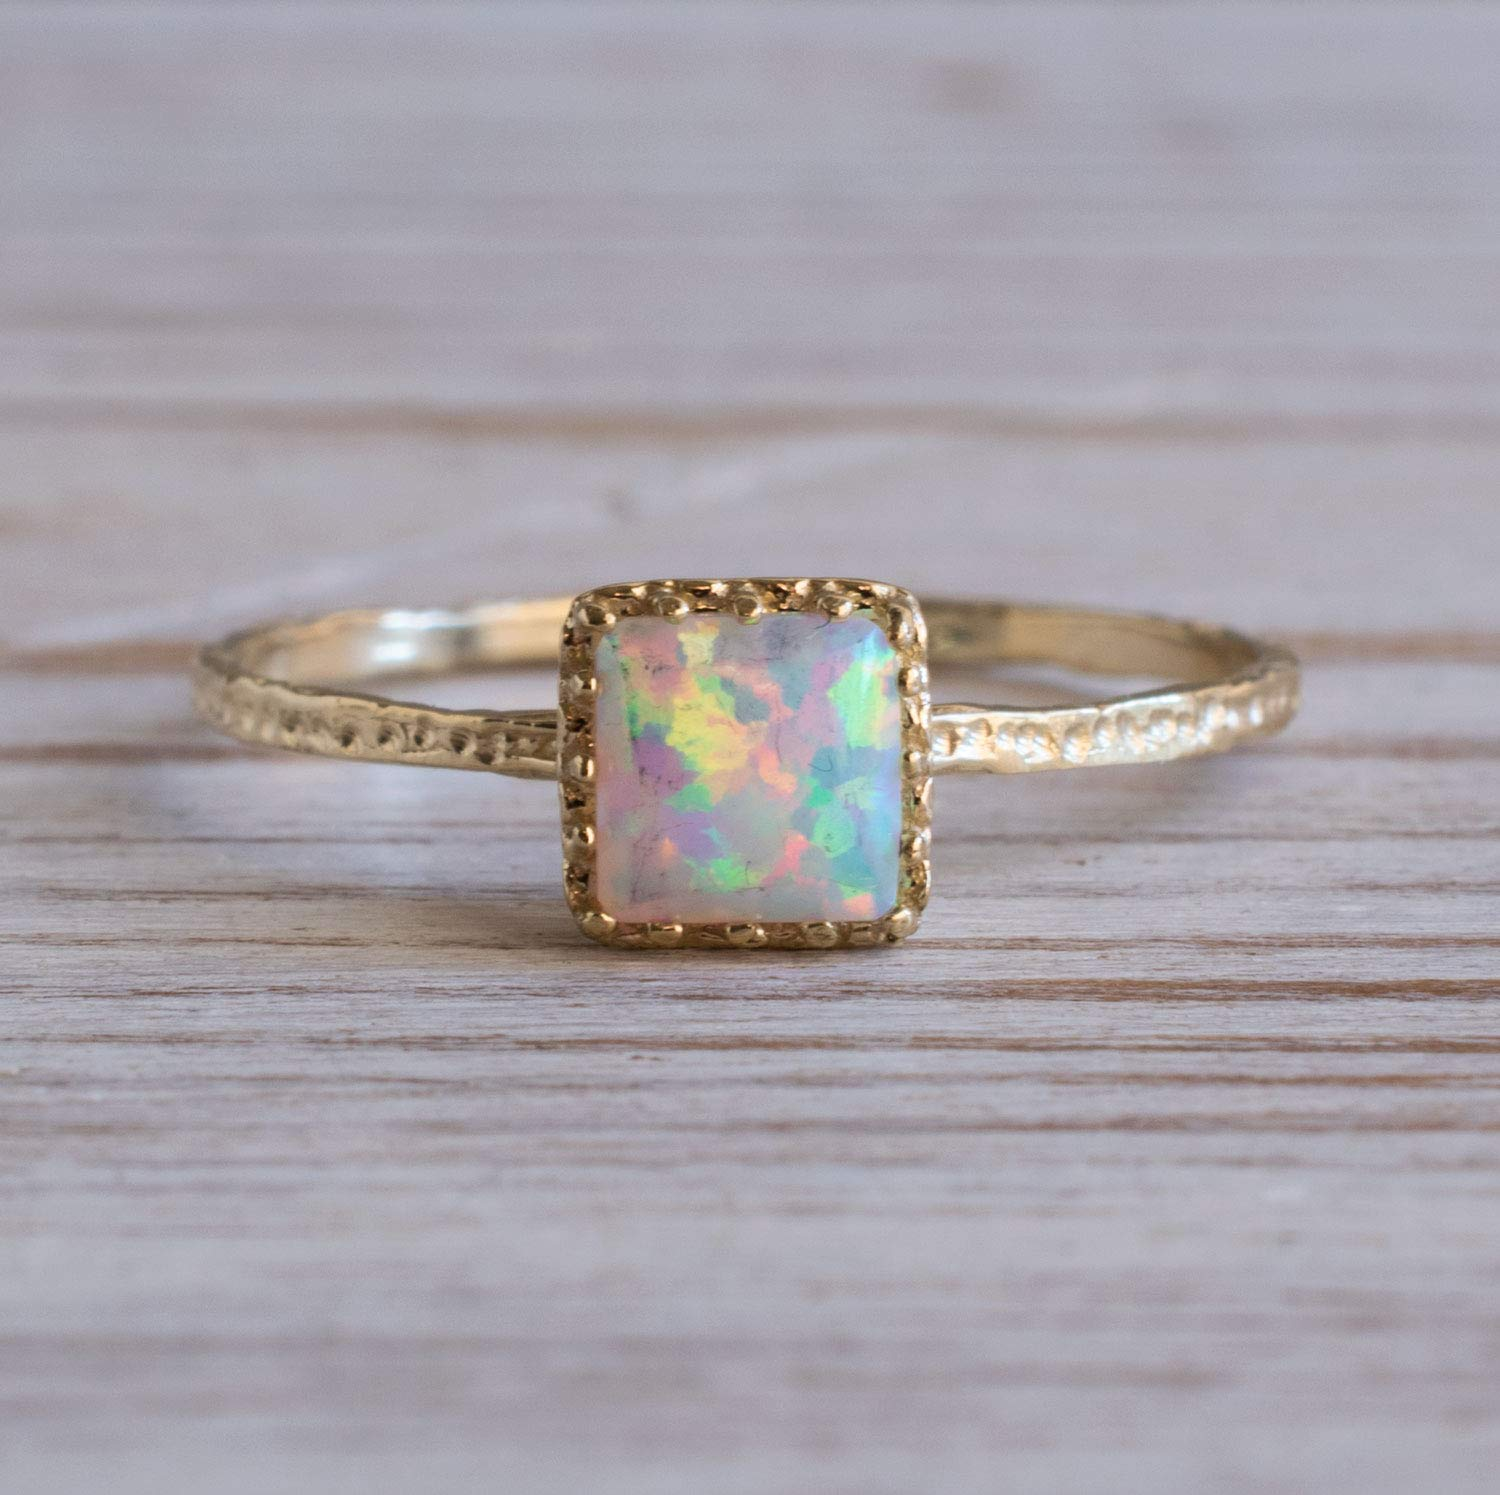 14K Gold White Opal Ring October Birthstone Simple Minimal Jewelry for Delicate Women Minimalist Handmade Gift Unique Thin Midi Promise Ring 14K Solid Yellow Gold Dainty Ring 5x5mm Gemstone